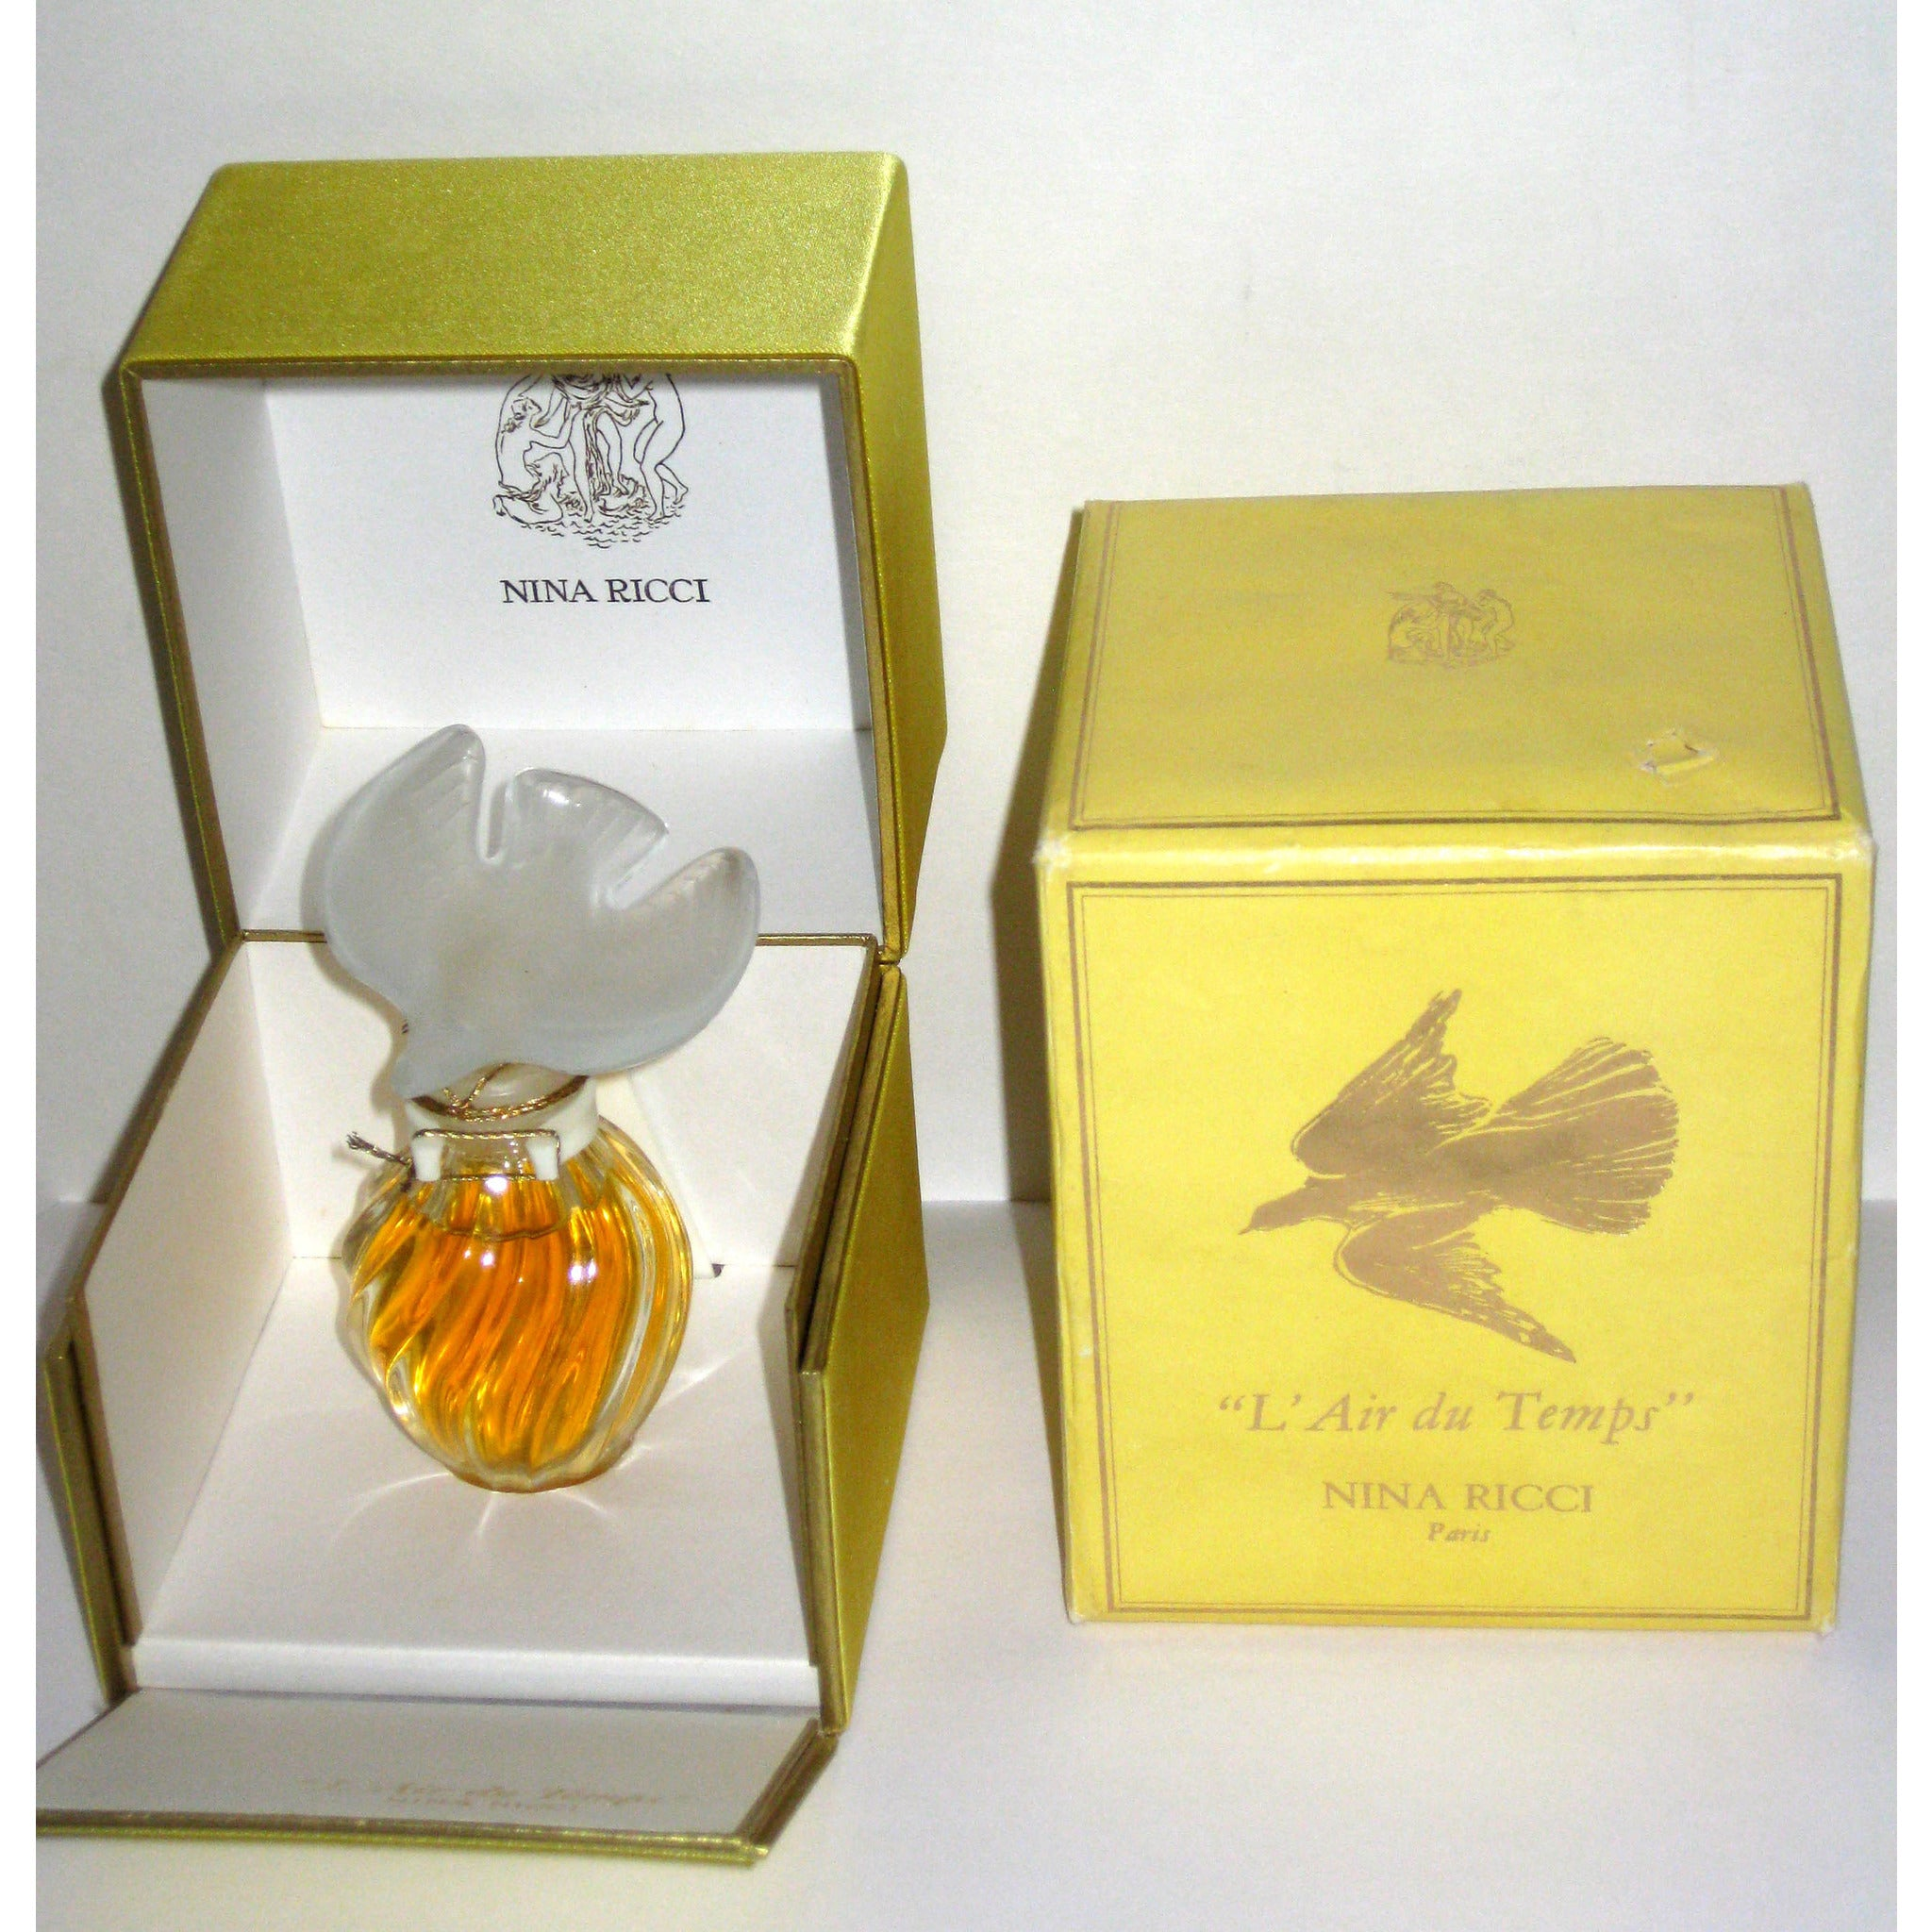 VintageNina Ricci L'Air du Temps Parfum Single Dove Lalique Flacon